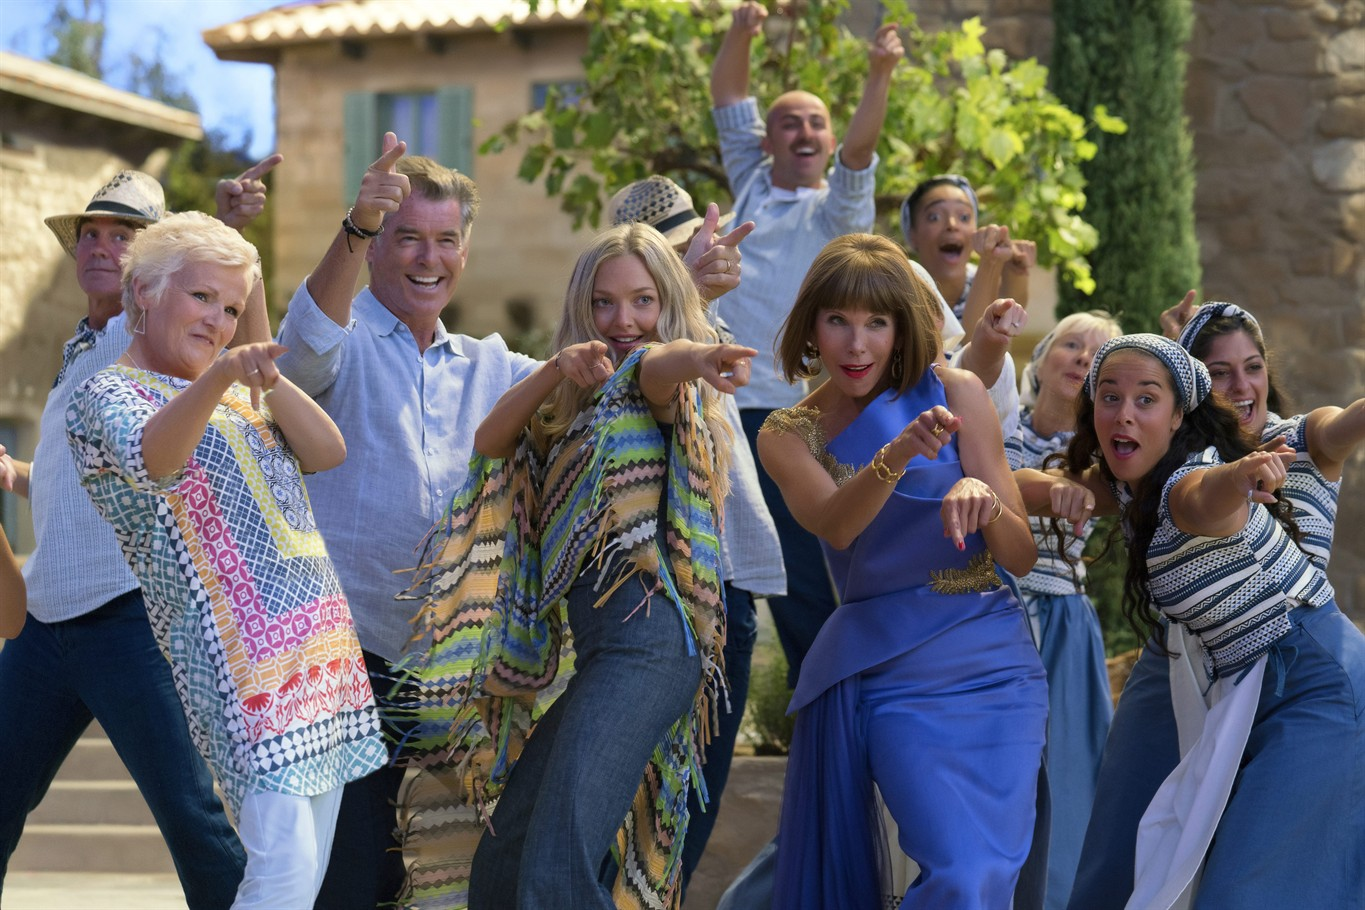 Review: Bask in the effervescent insanity of 'Mamma Mia 2 ...